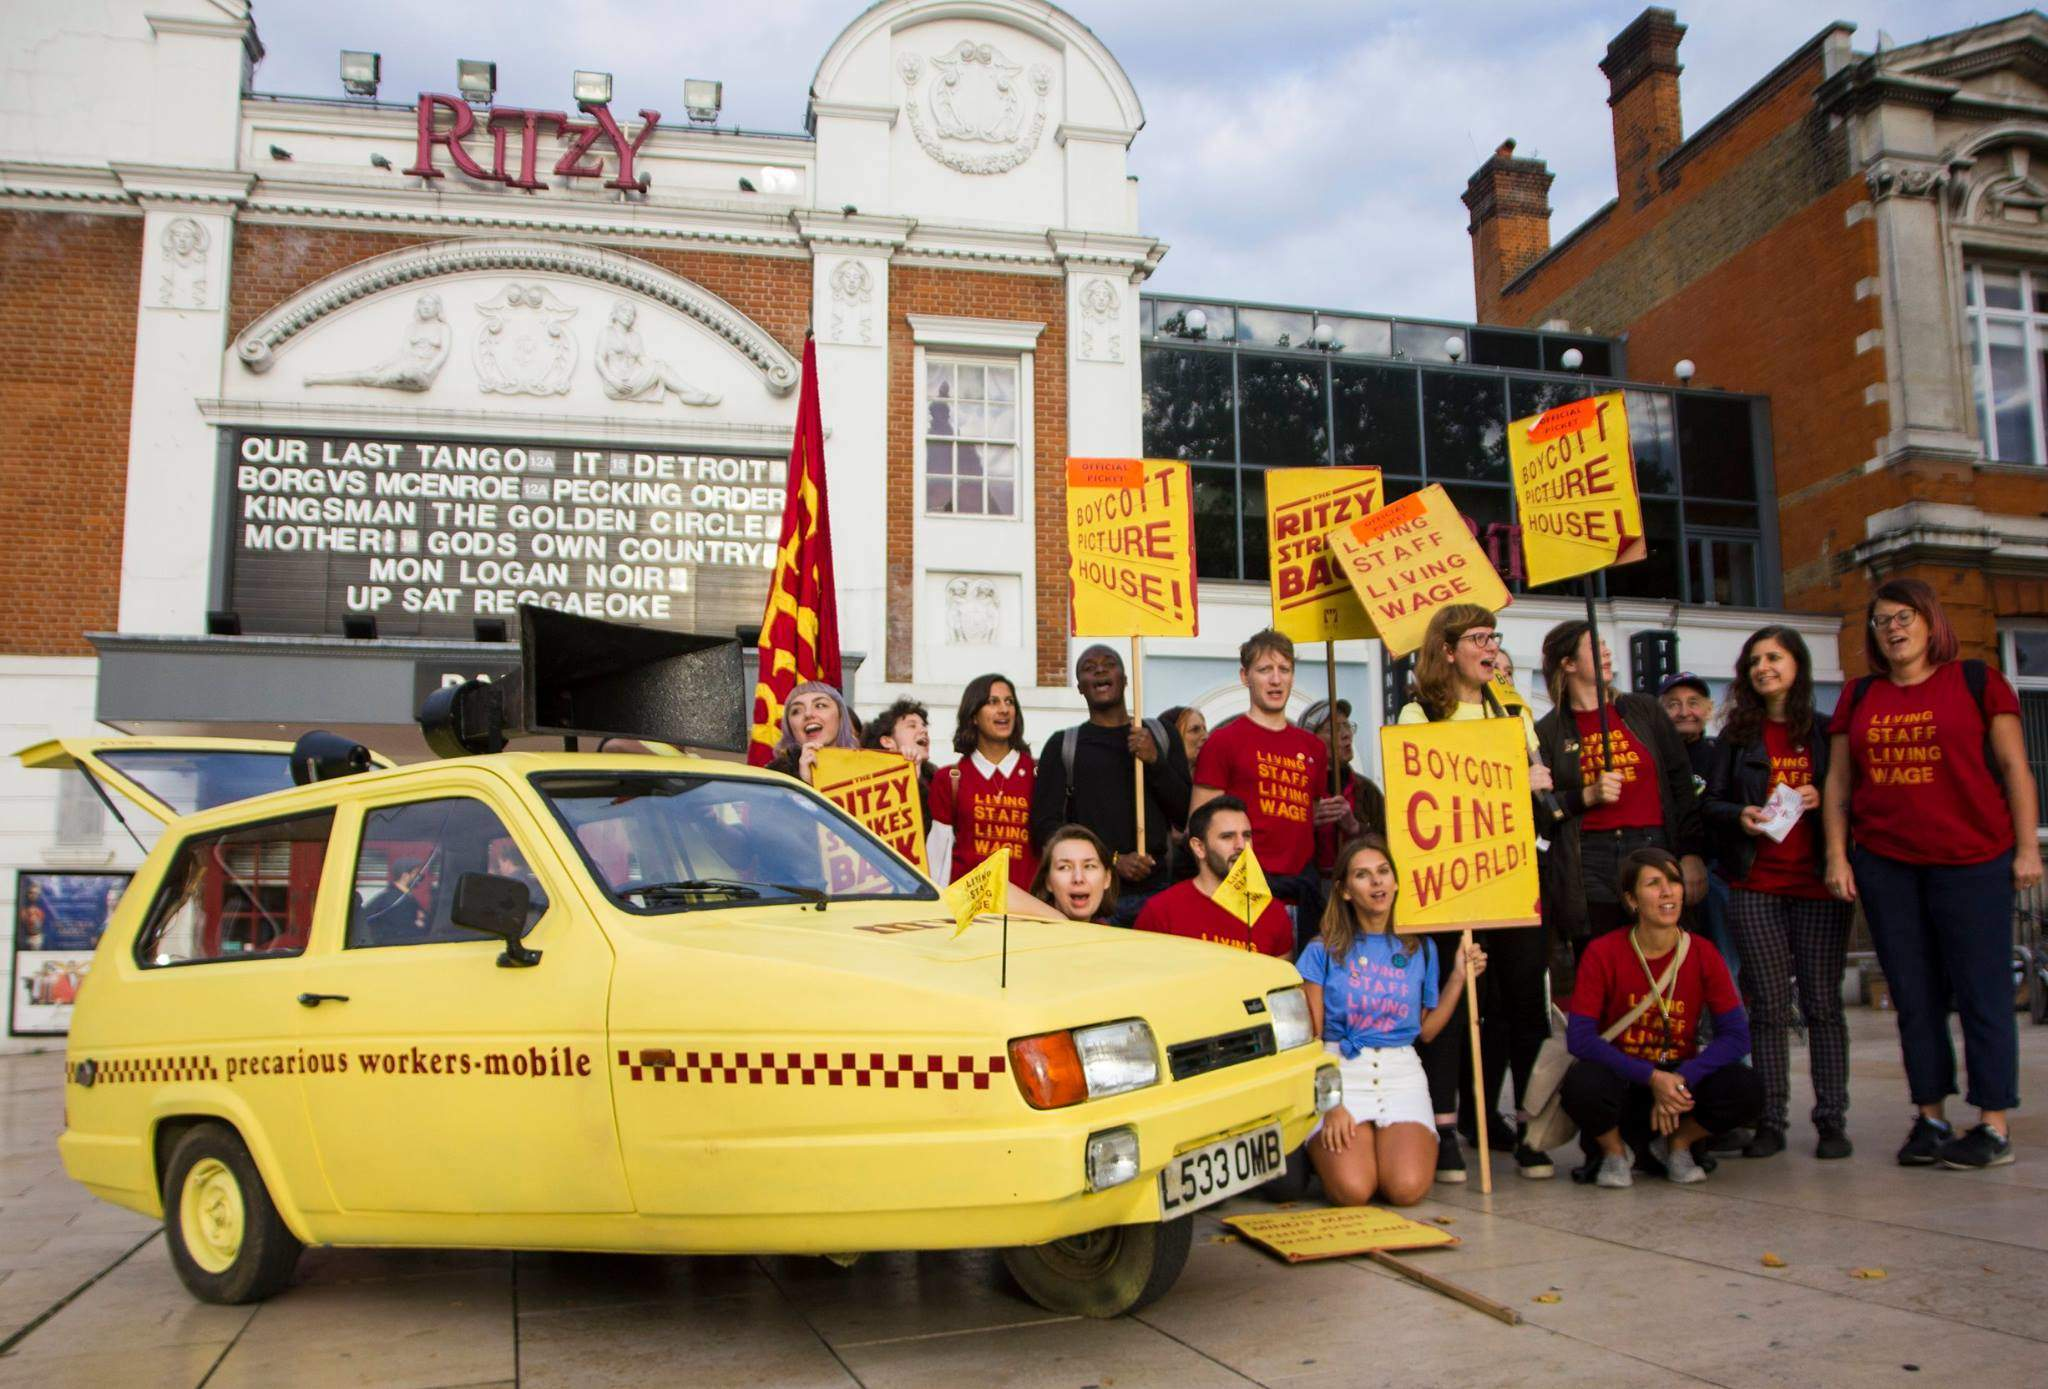 Picturehouse is threatening to sack workers striking over the living wage